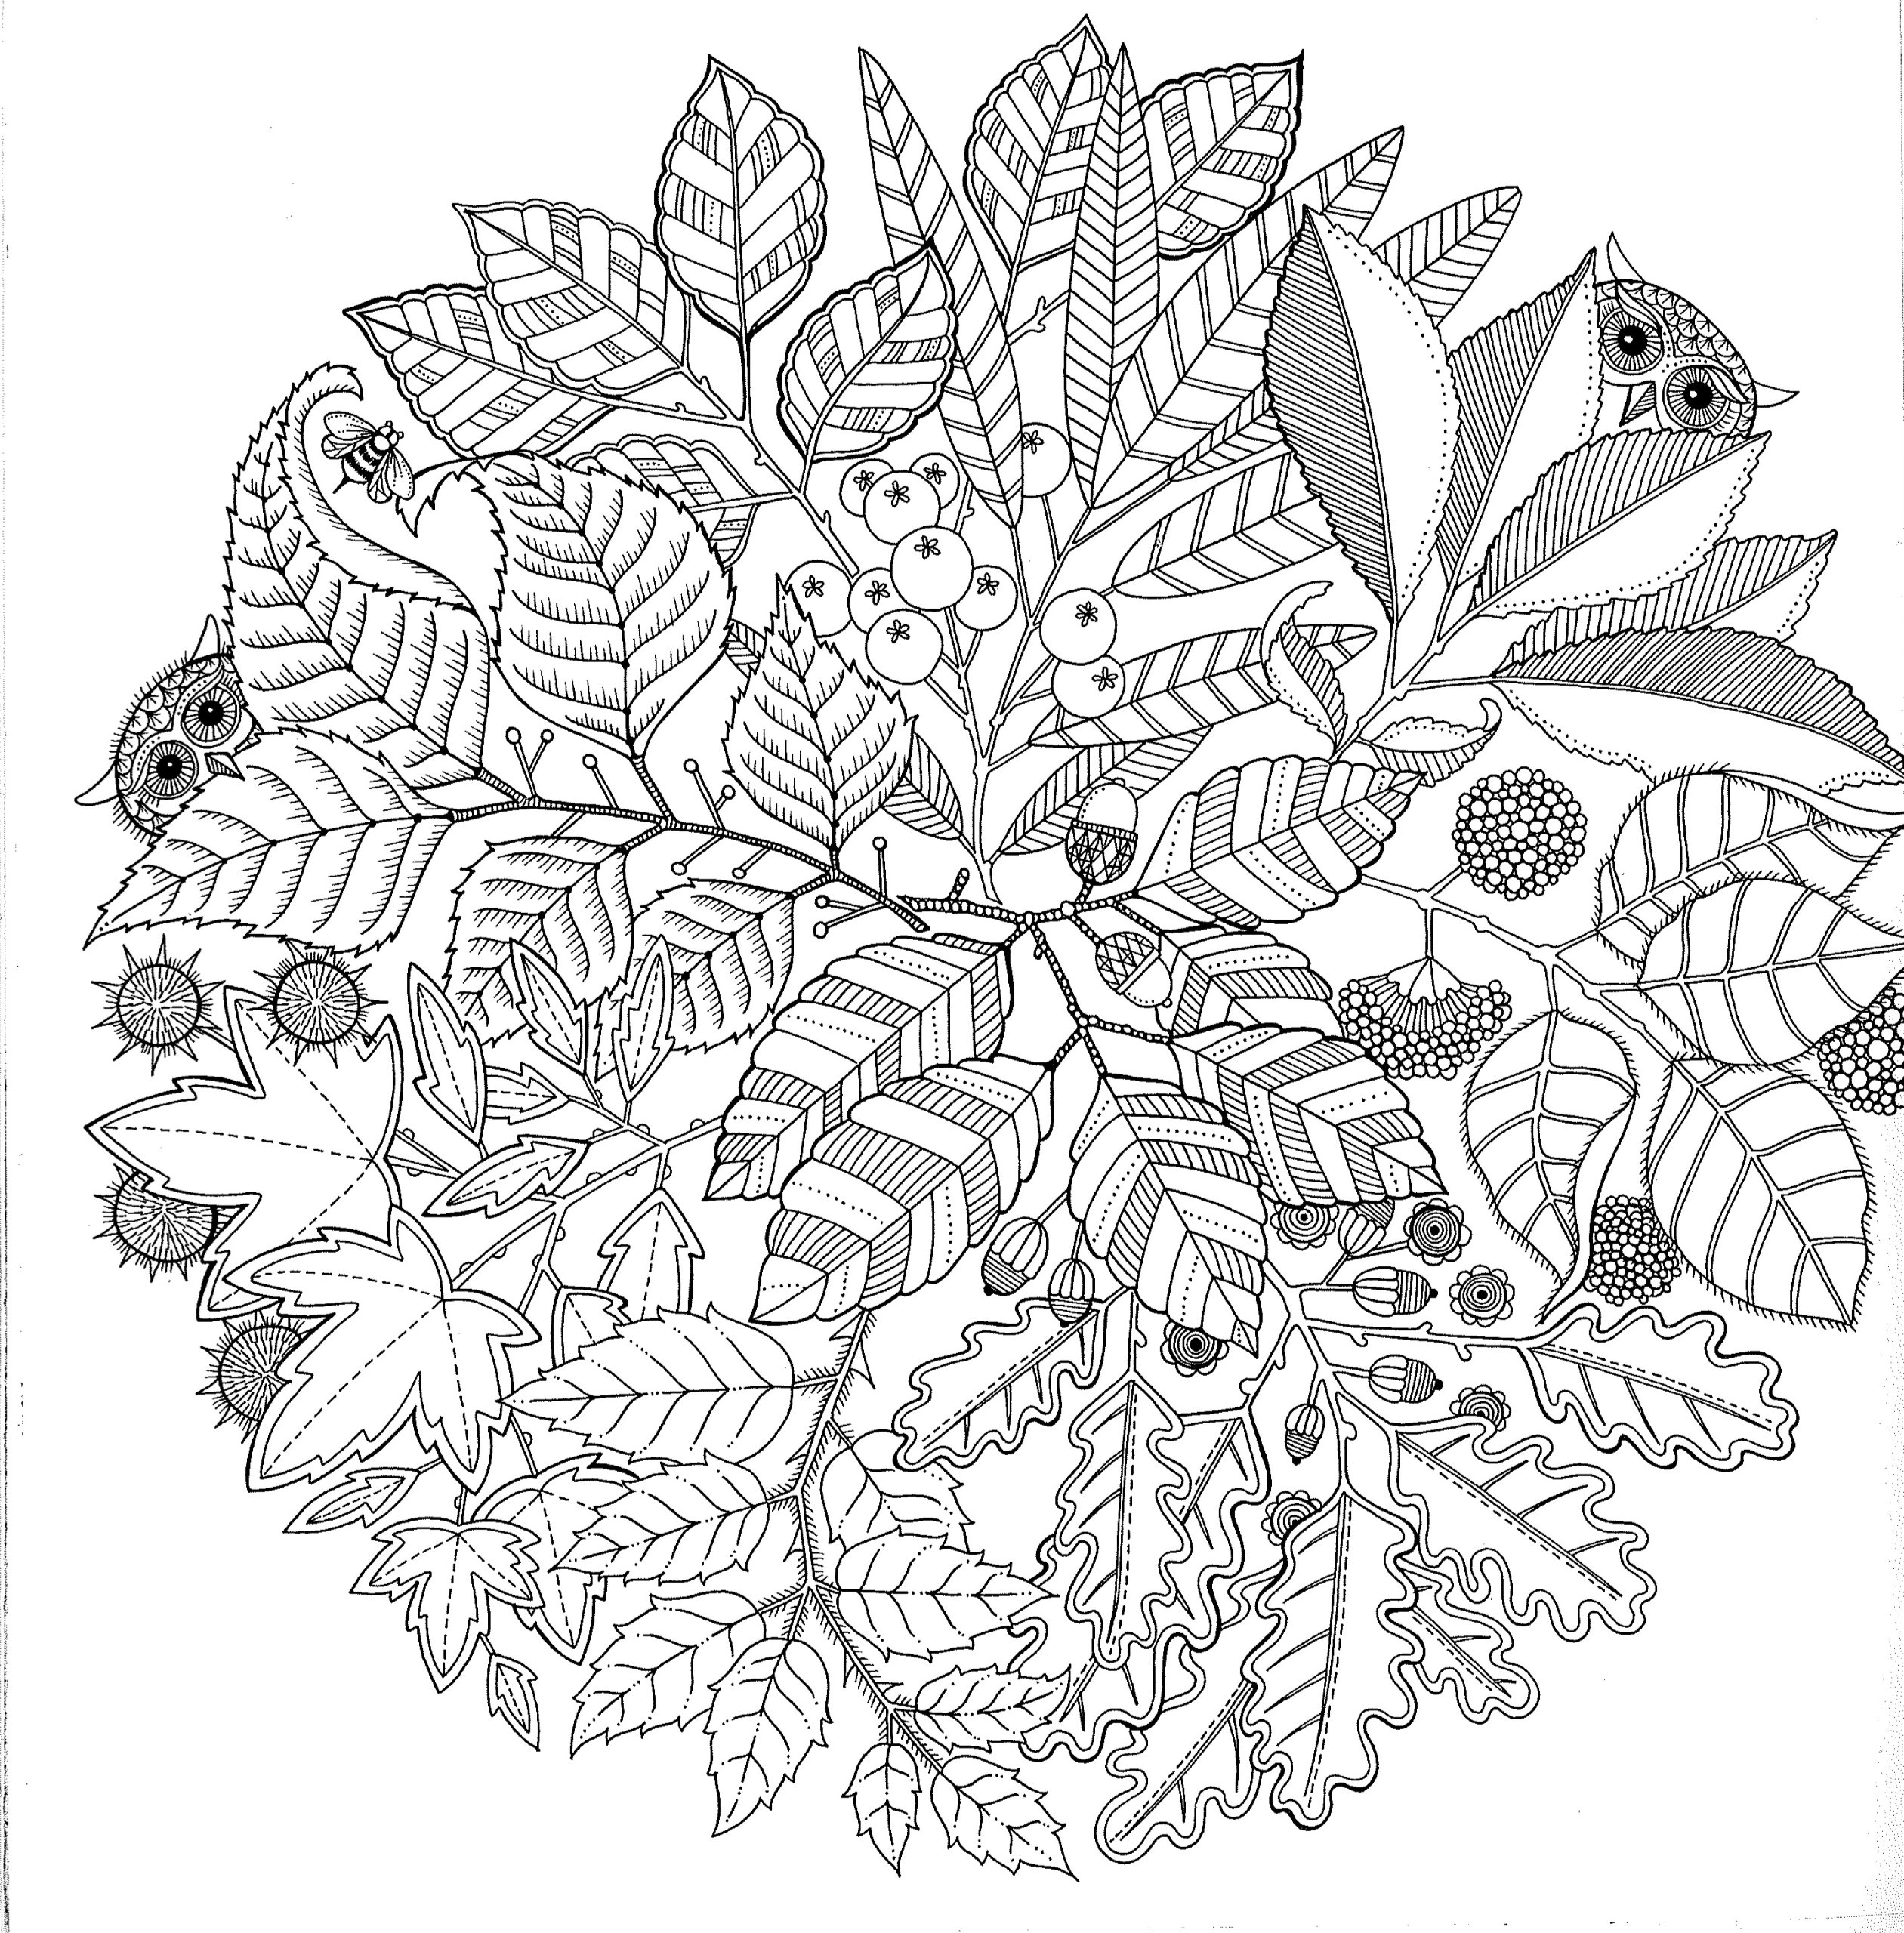 Jardin secret carnet de coloriage et chasse au tresor anti stress Johanna Basford Amazon Books